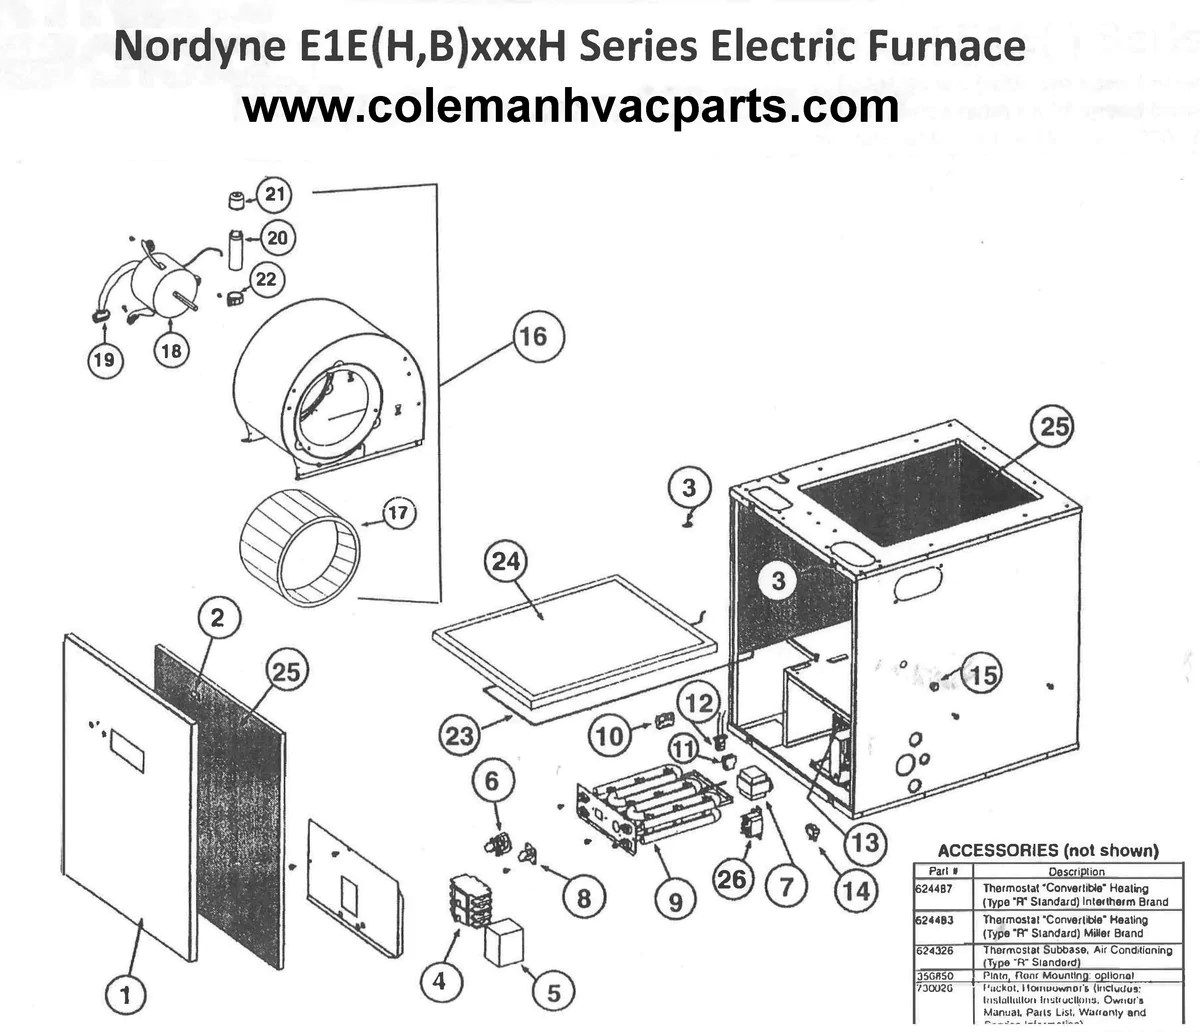 e1eh015h nordyne electric furnace parts u2013 hvacpartstoremiller central air conditioner wiring diagram 17 [ 1199 x 1032 Pixel ]